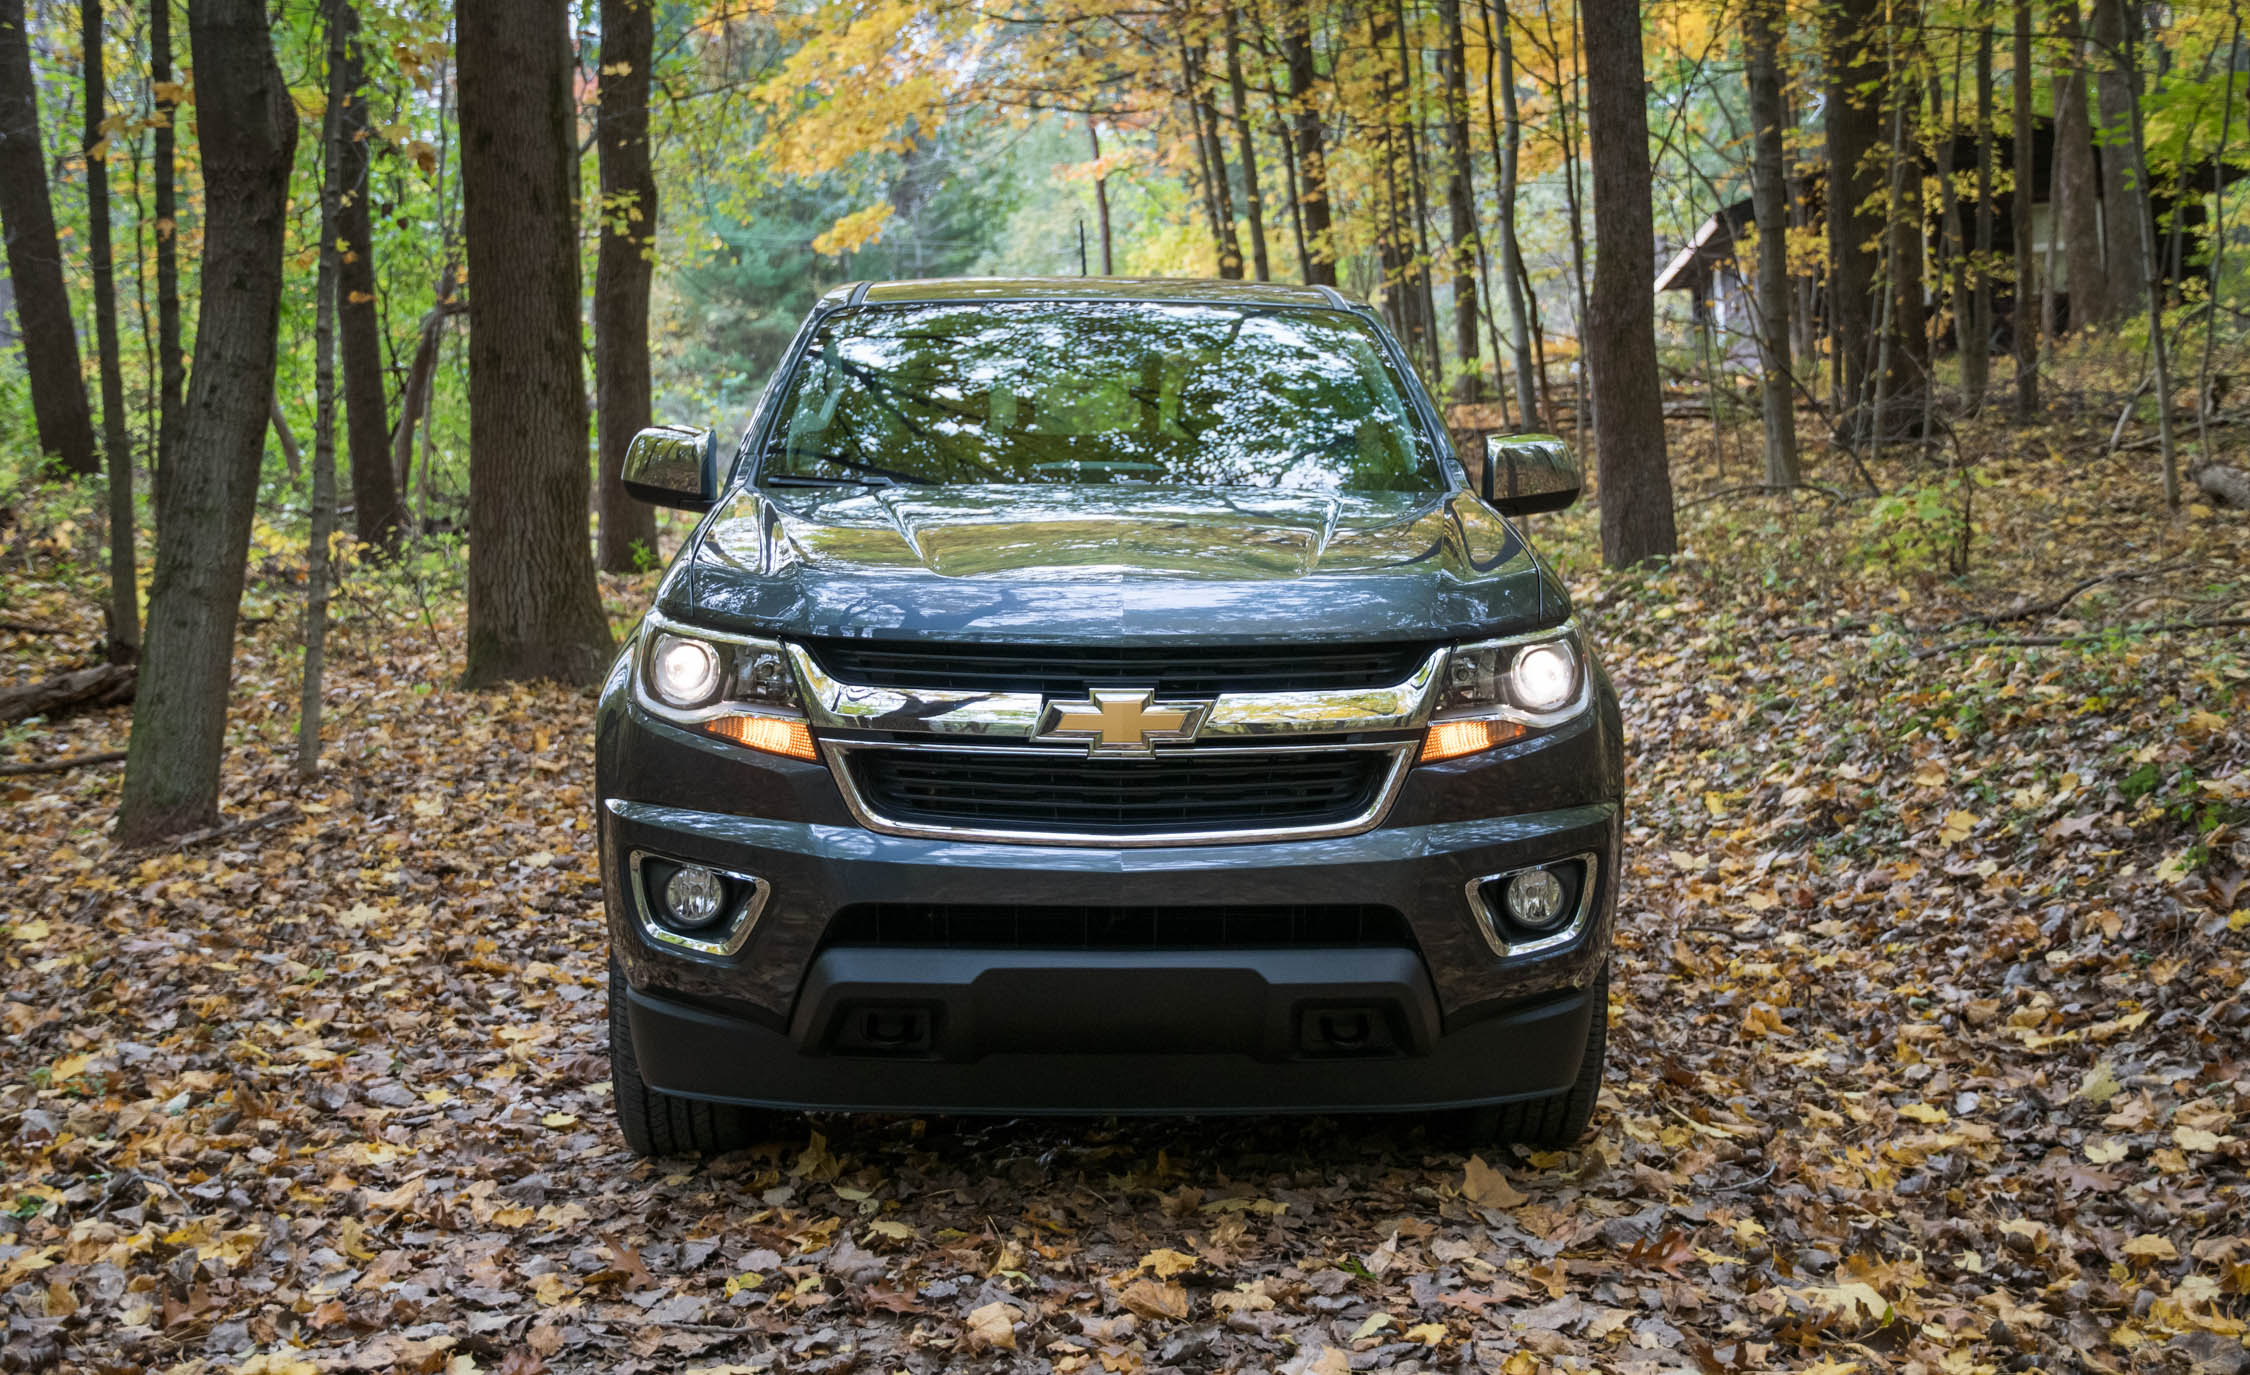 2017 Chevrolet Colorado Exterior Front End (Photo 5 of 41)